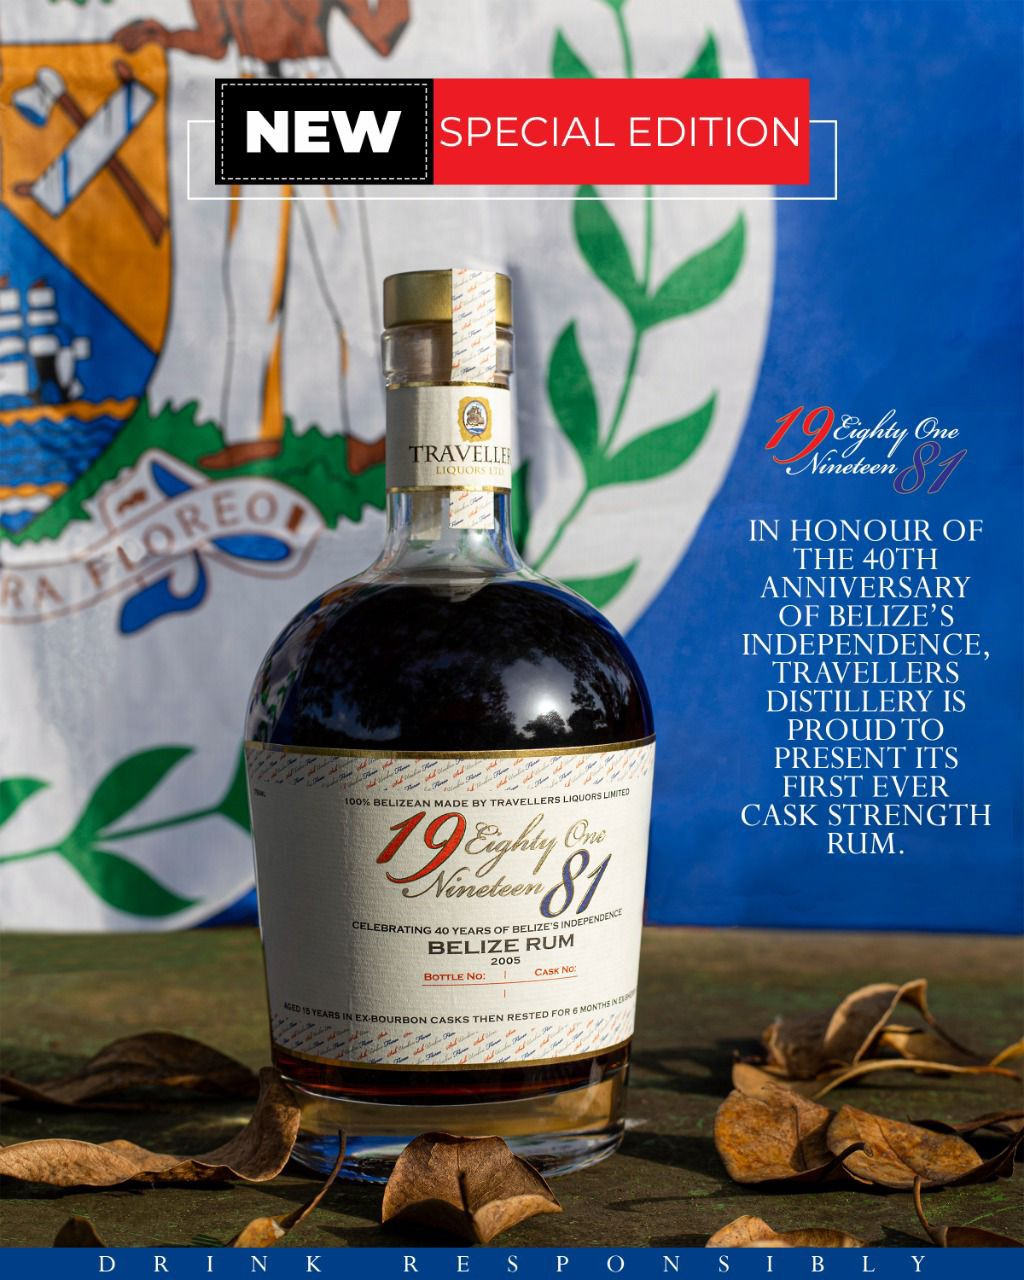 In celebration of Belize's 40th anniversary, Travellers has their new aged rum out: 1981 Limited Edition Rum